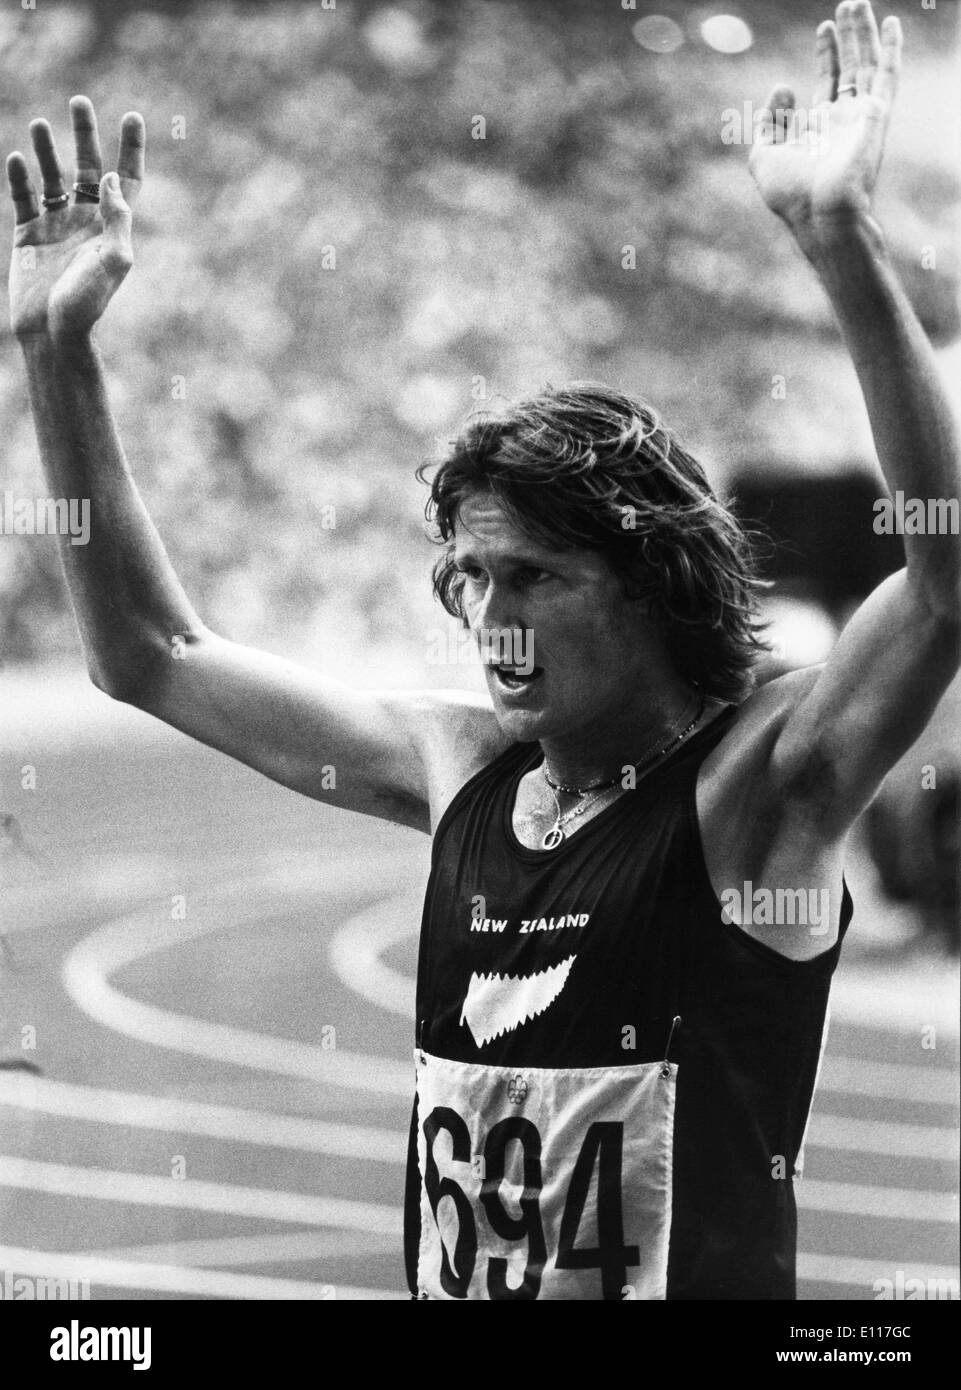 Mar 08, 1976; Montreal, Canada; Winner of the 1500 meter dash JOHN WALKER at the Olympic Games 1976 in Montreal.. - Stock Image